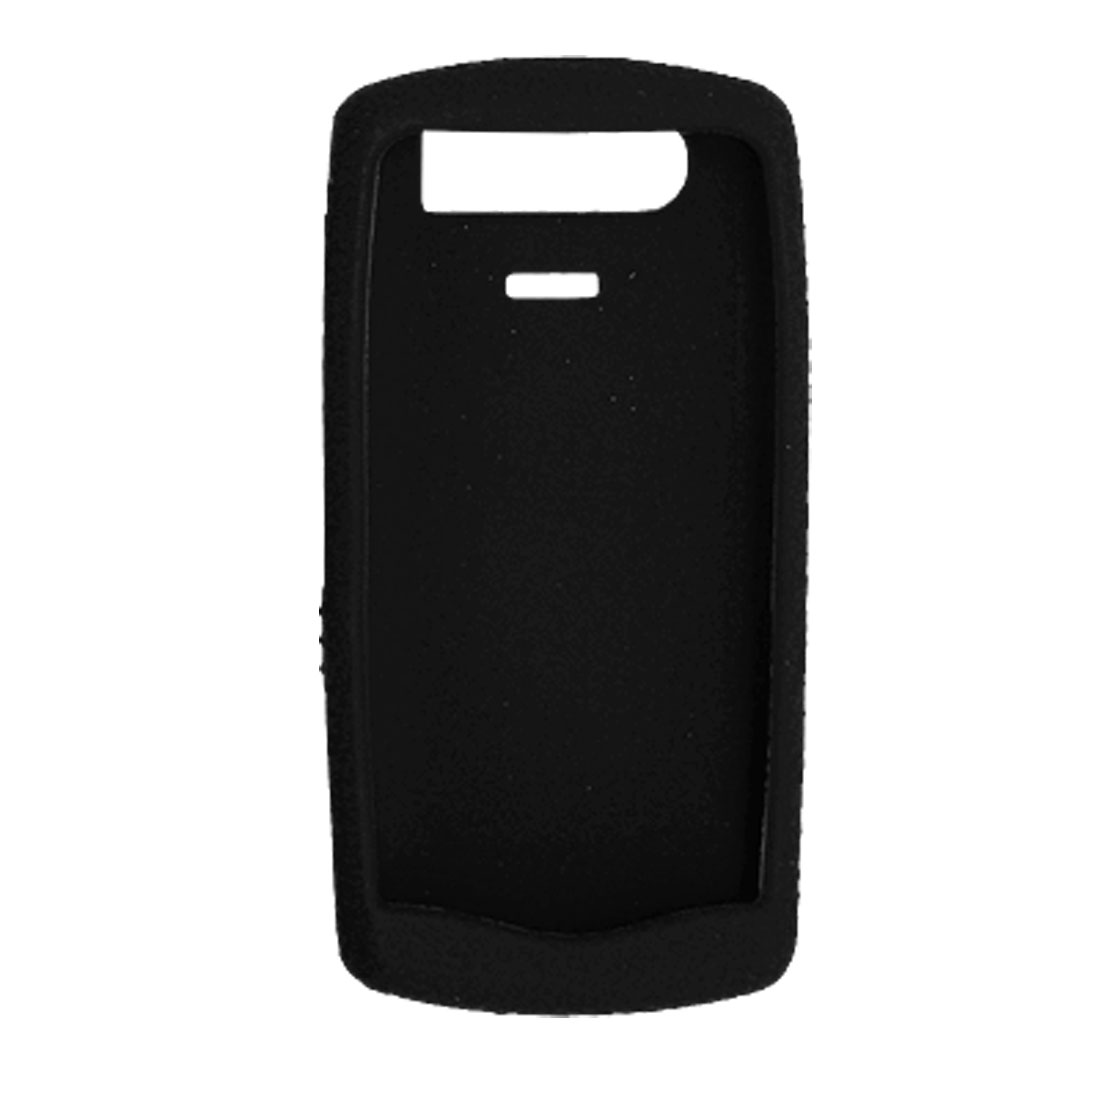 Black Textured Silicone Case Skin for Blackberry Pearl 8110